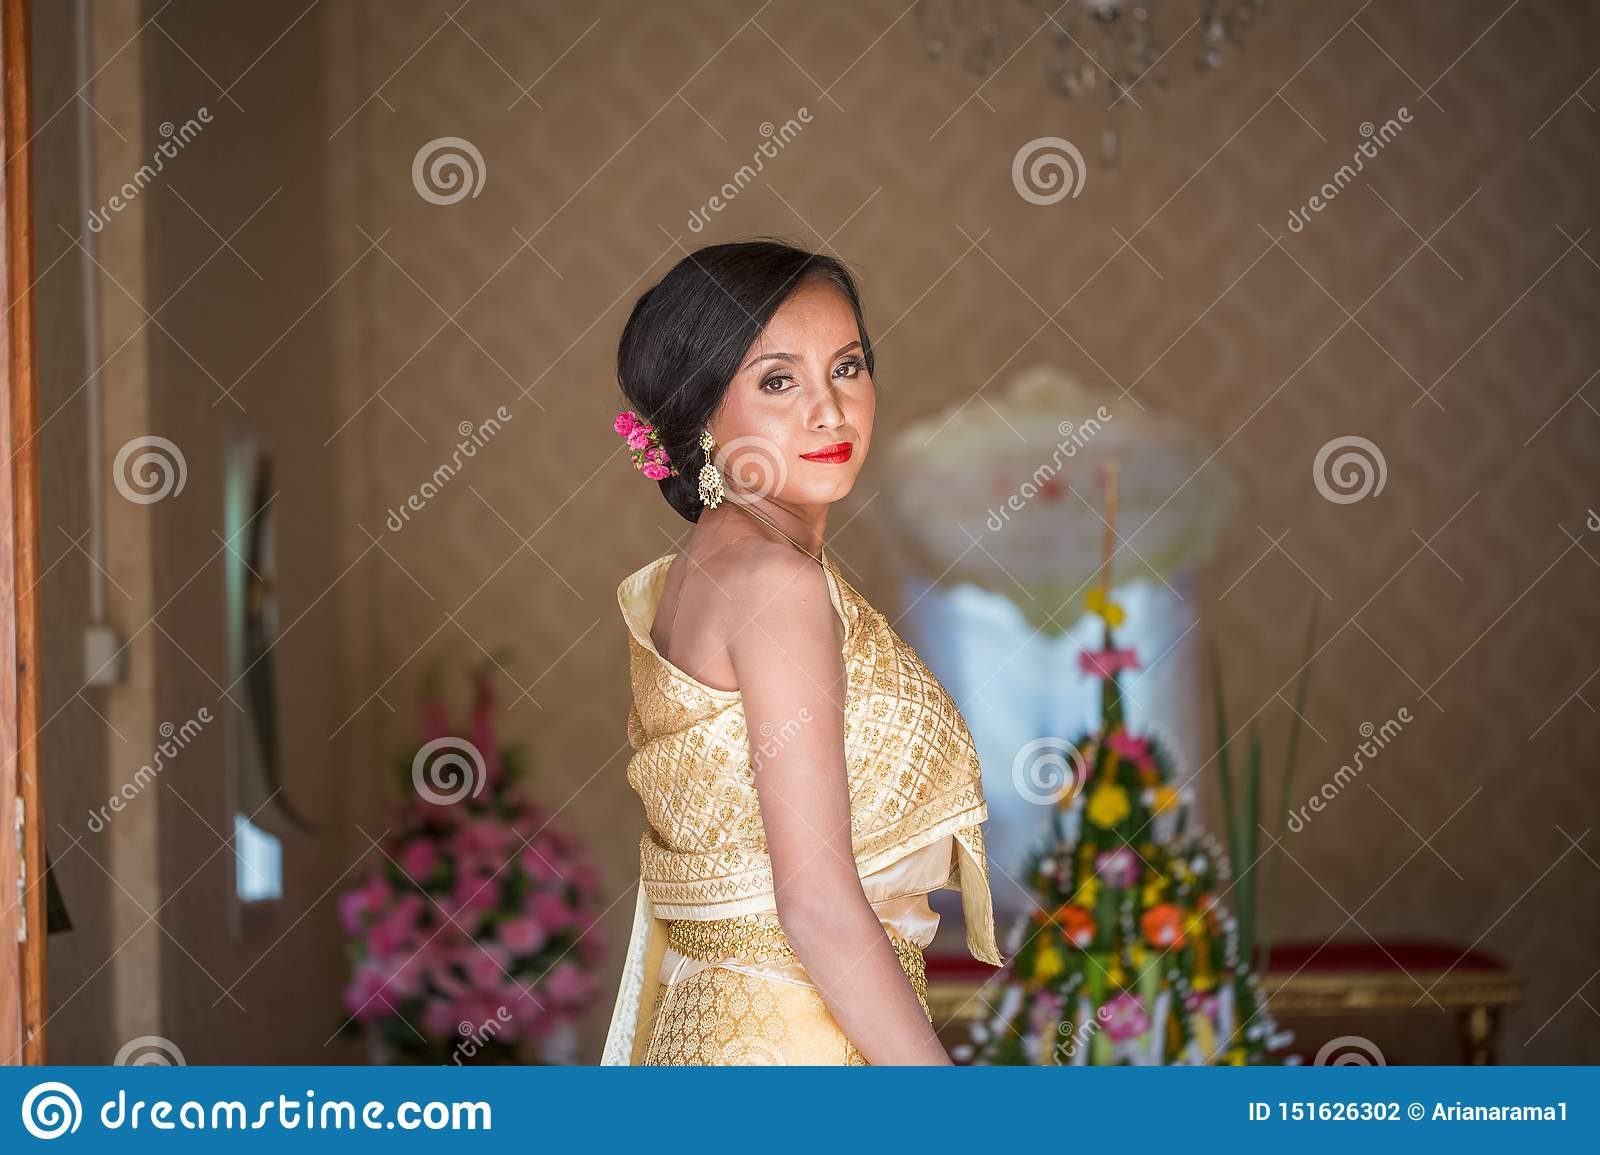 https://thumbs.dreamstime.com/z/beautiful-thai-bride-wedding-day-happy-asian-traditional-costumes-151626302.jpg